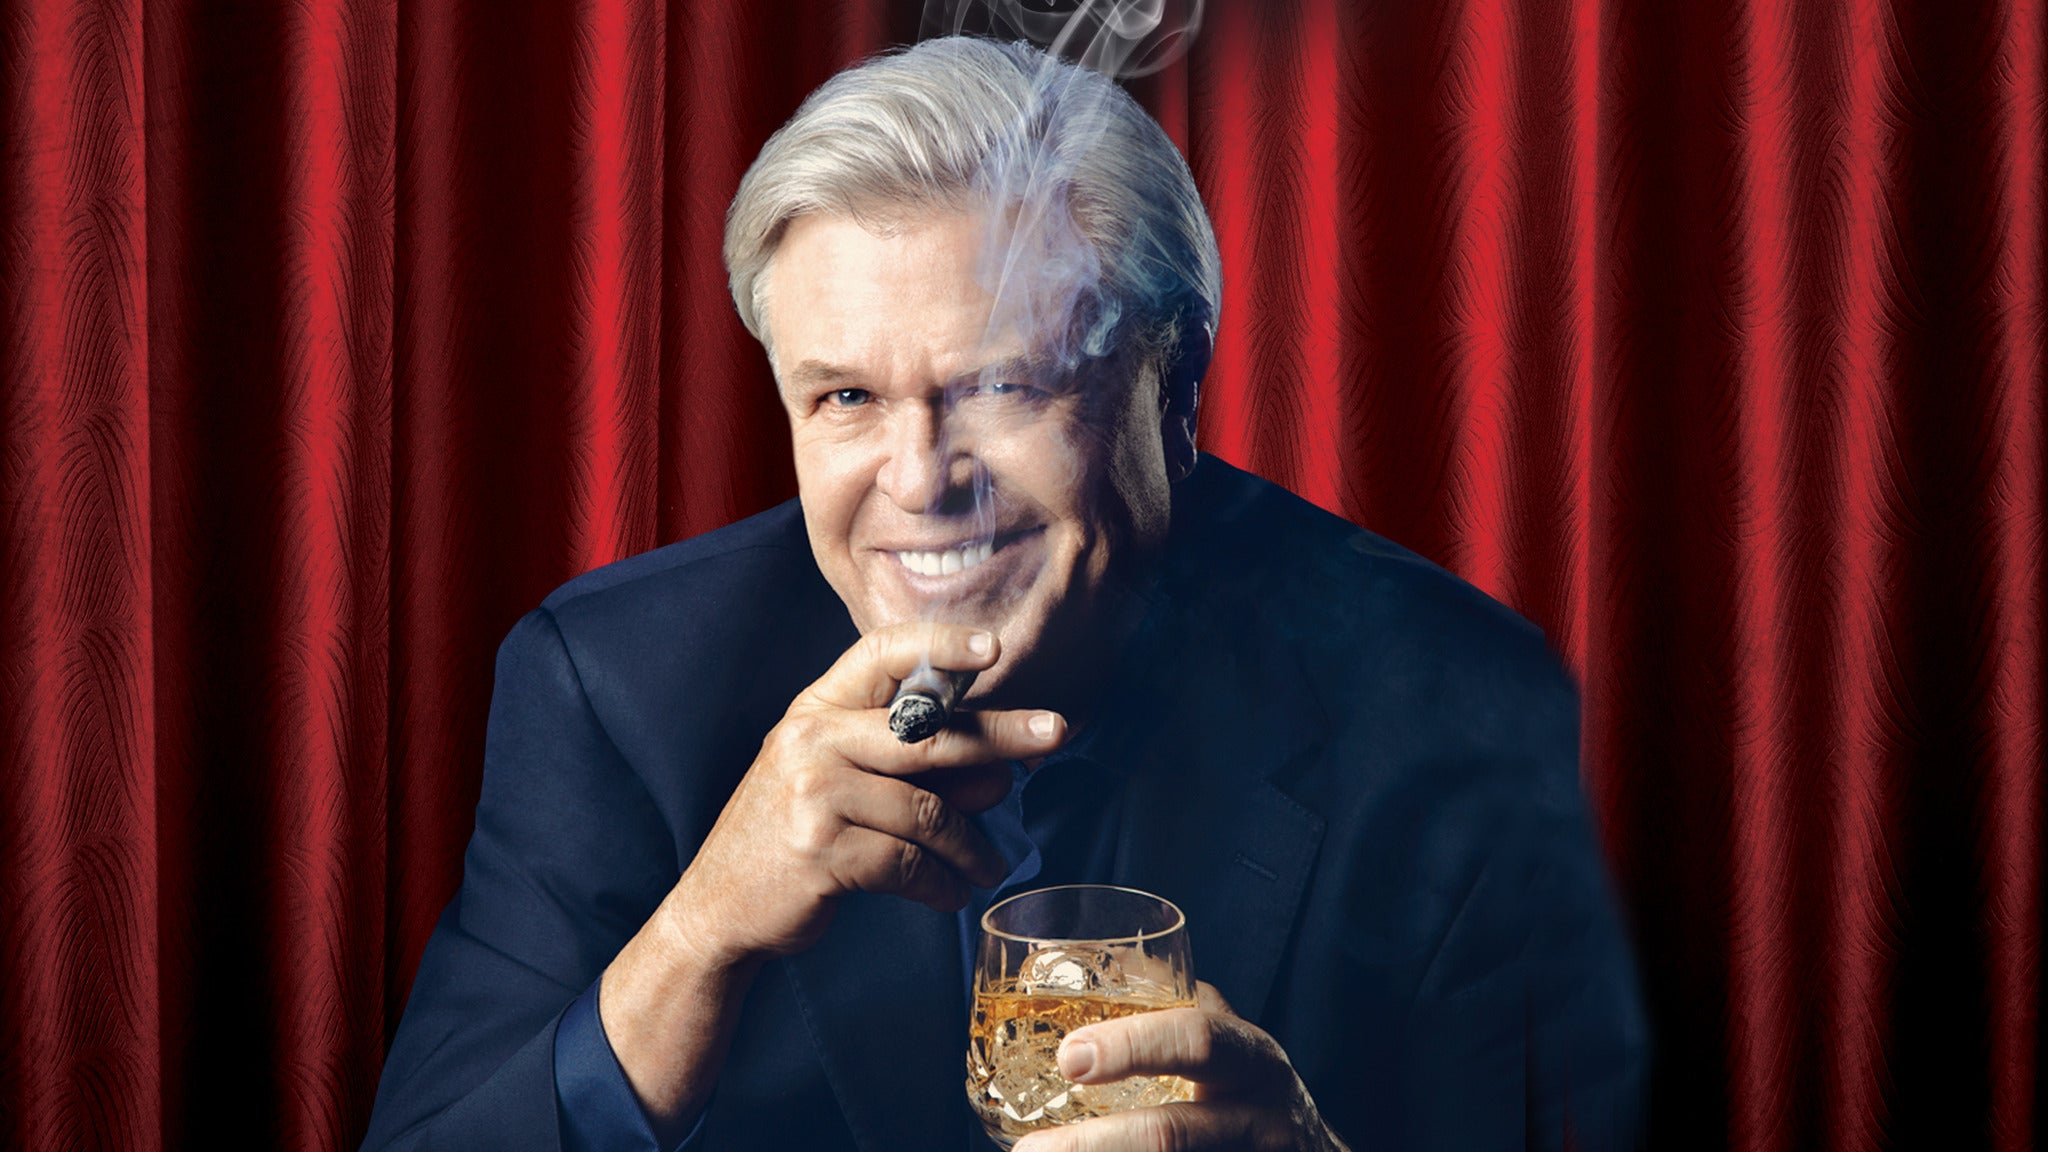 Ron White at Miller Theater - GA